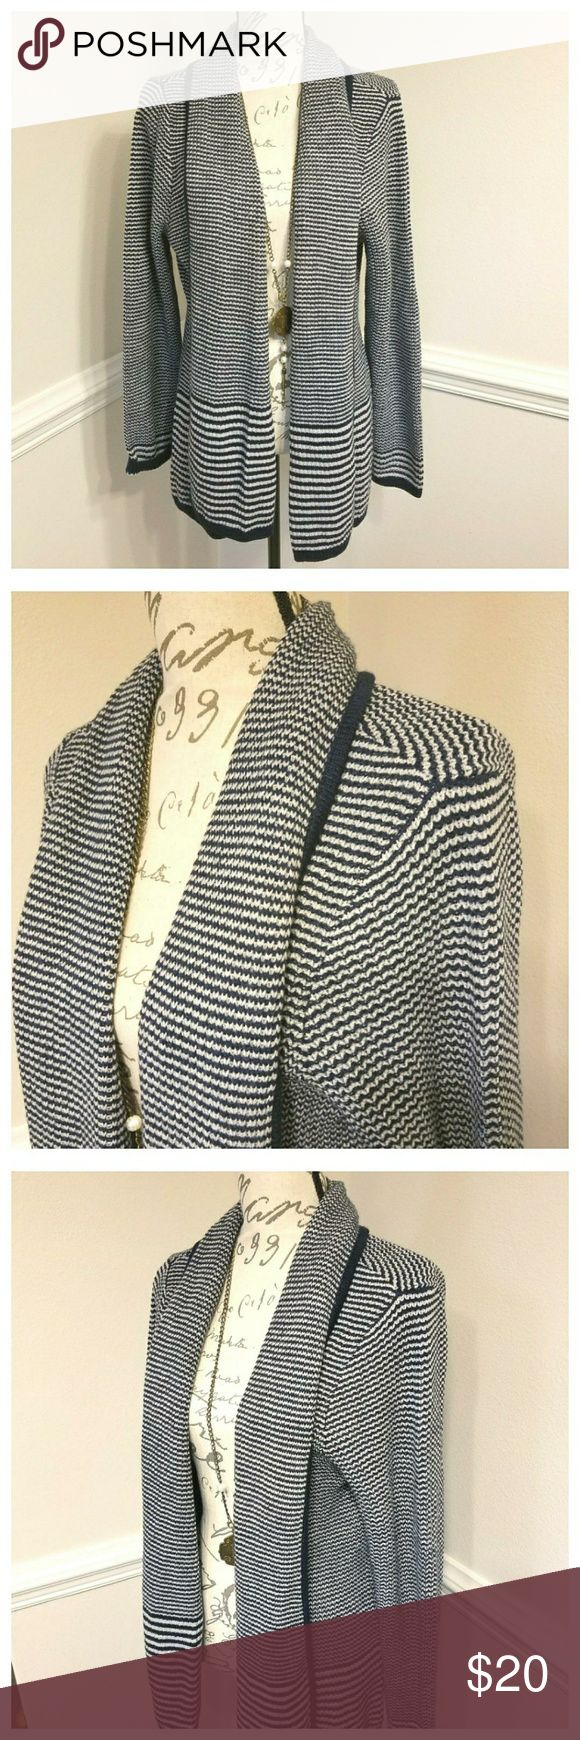 🆕️ Blue and White Cardigan with front pockets Blue and White strip cardigan. Great for any occasion material: acrylic croft & barrow Sweaters Cardigans